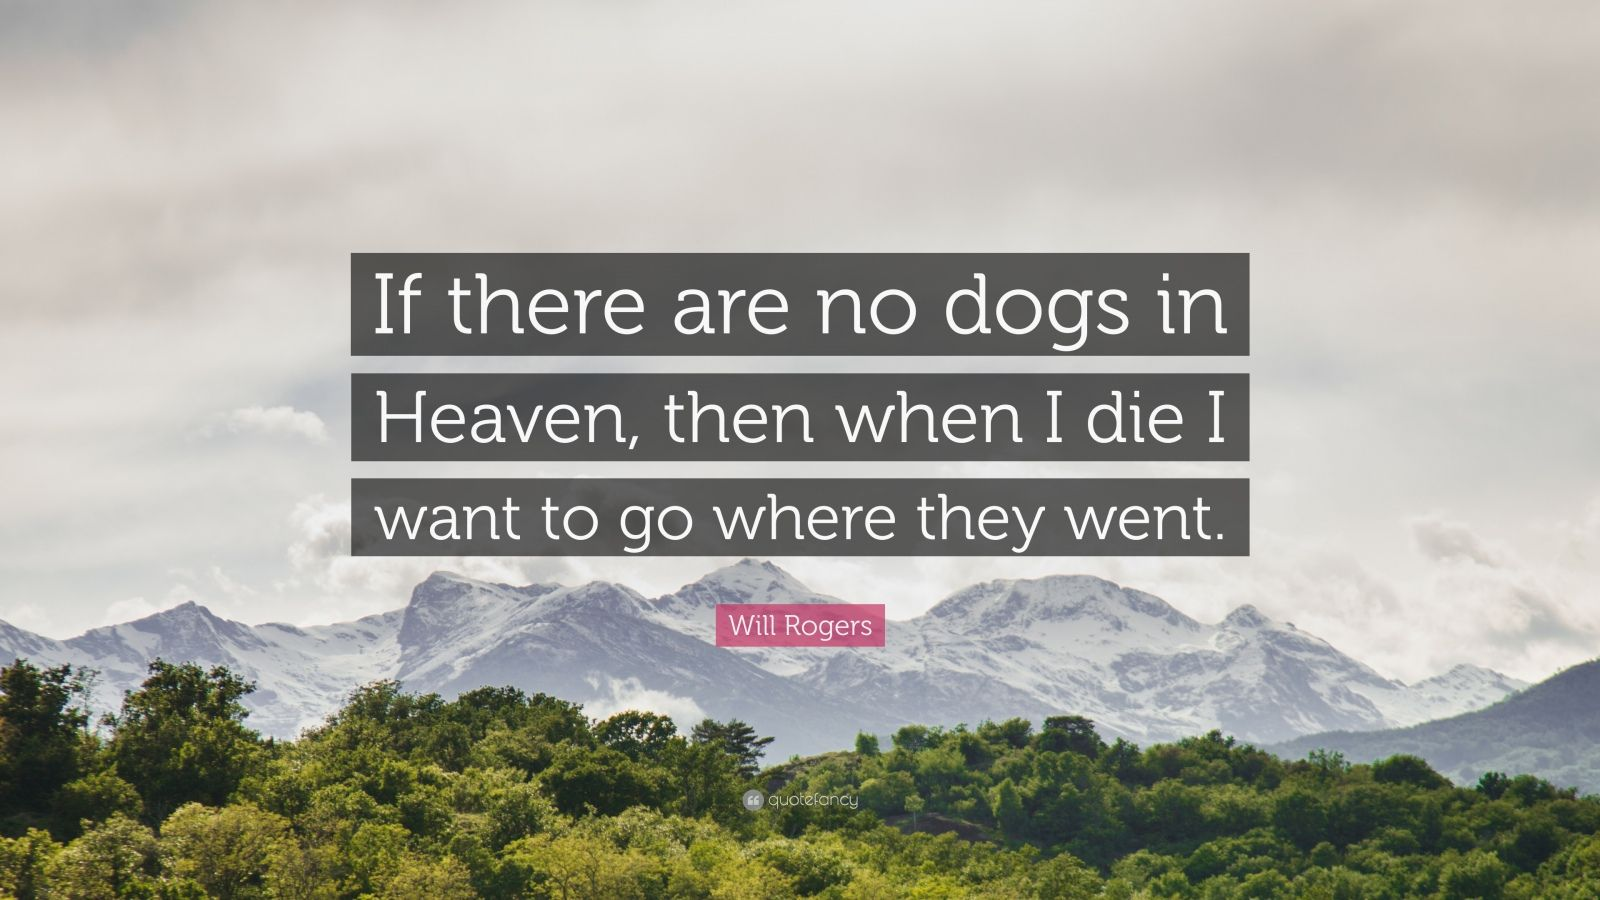 """Will Rogers Quote: """"If there are no dogs in Heaven, then when I die I want to go where they went."""""""